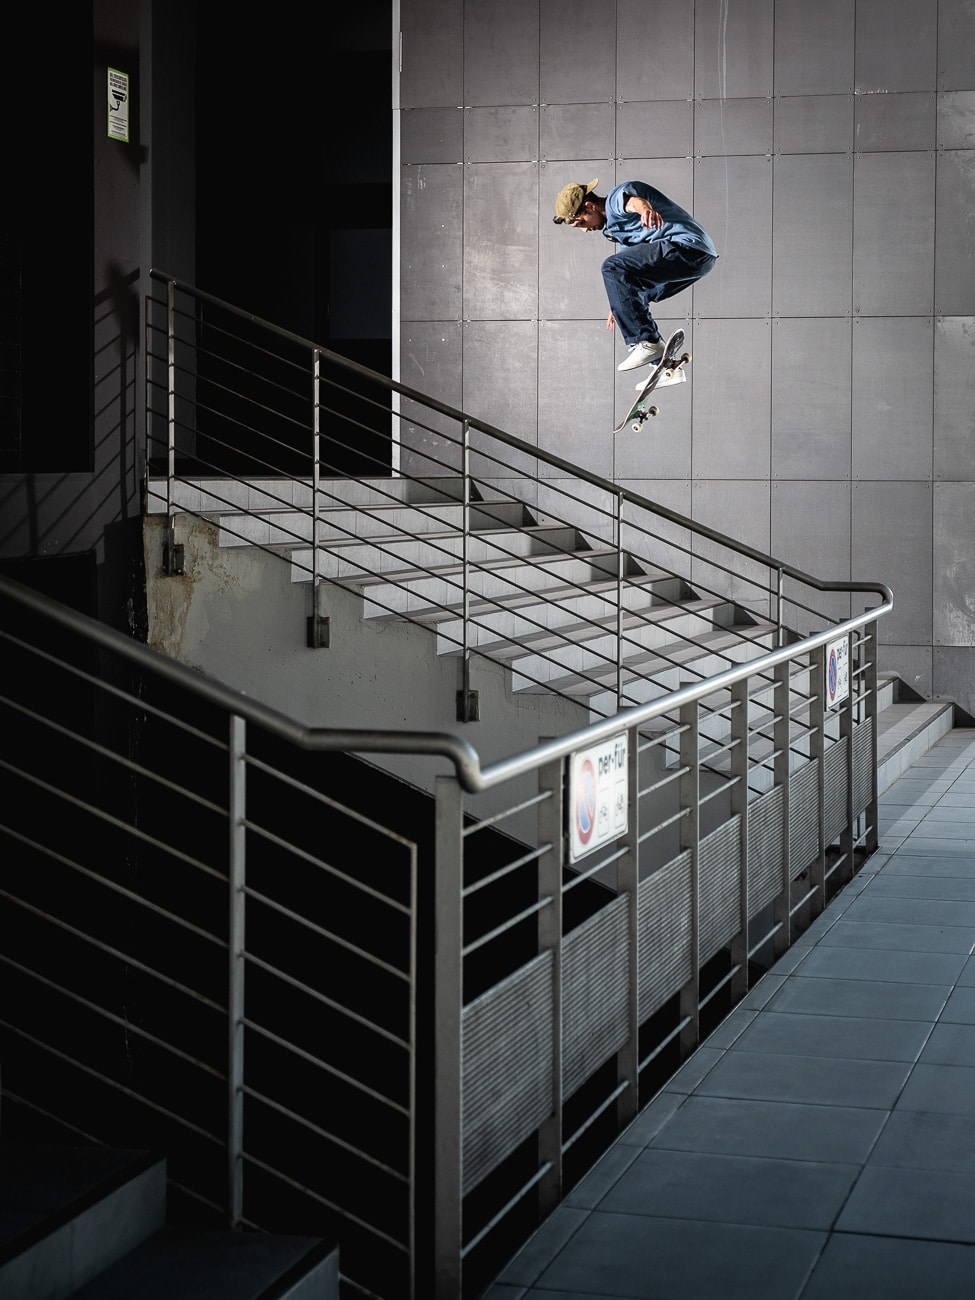 deaf-chips-irregularskatemag-milano-tour-hannes-mautner-photo-40